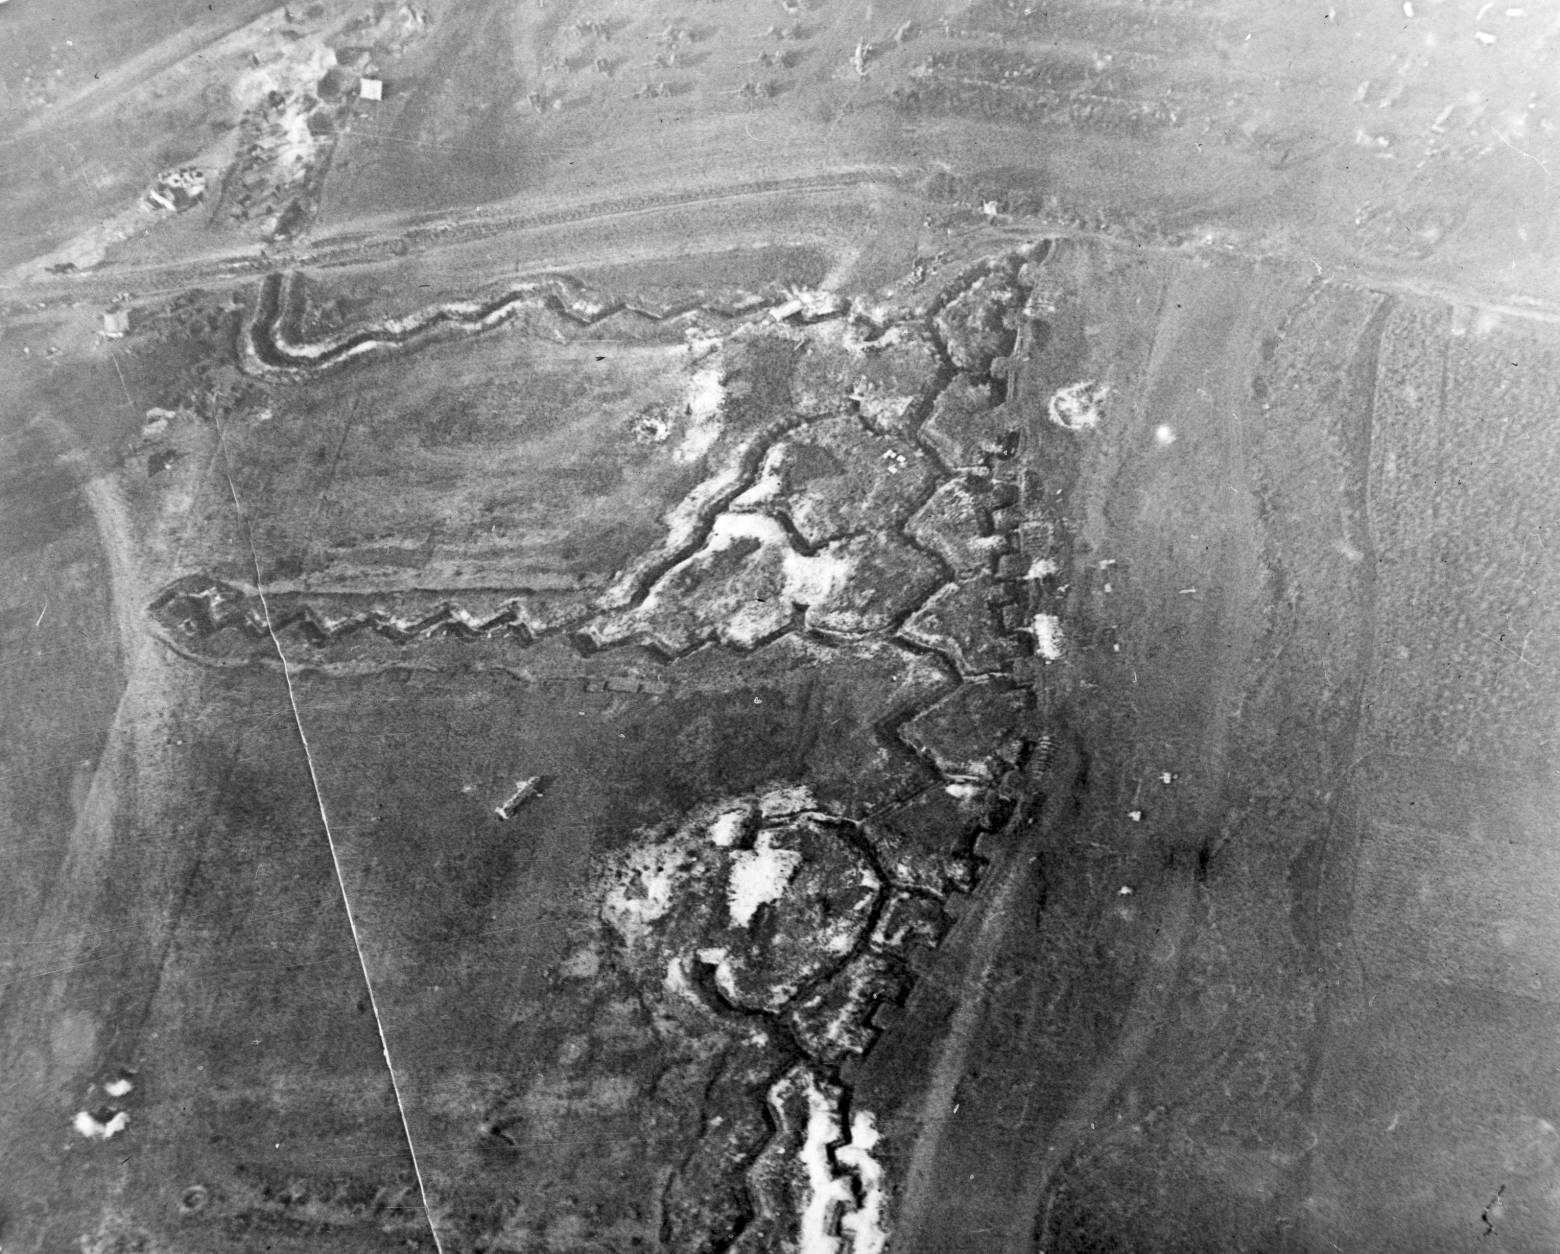 In this aerial photo, a portion of an old reserve trench is visible near the Somme River, on the western front, in France, during World War I. Exact location and date are unknown. (AP Photo)